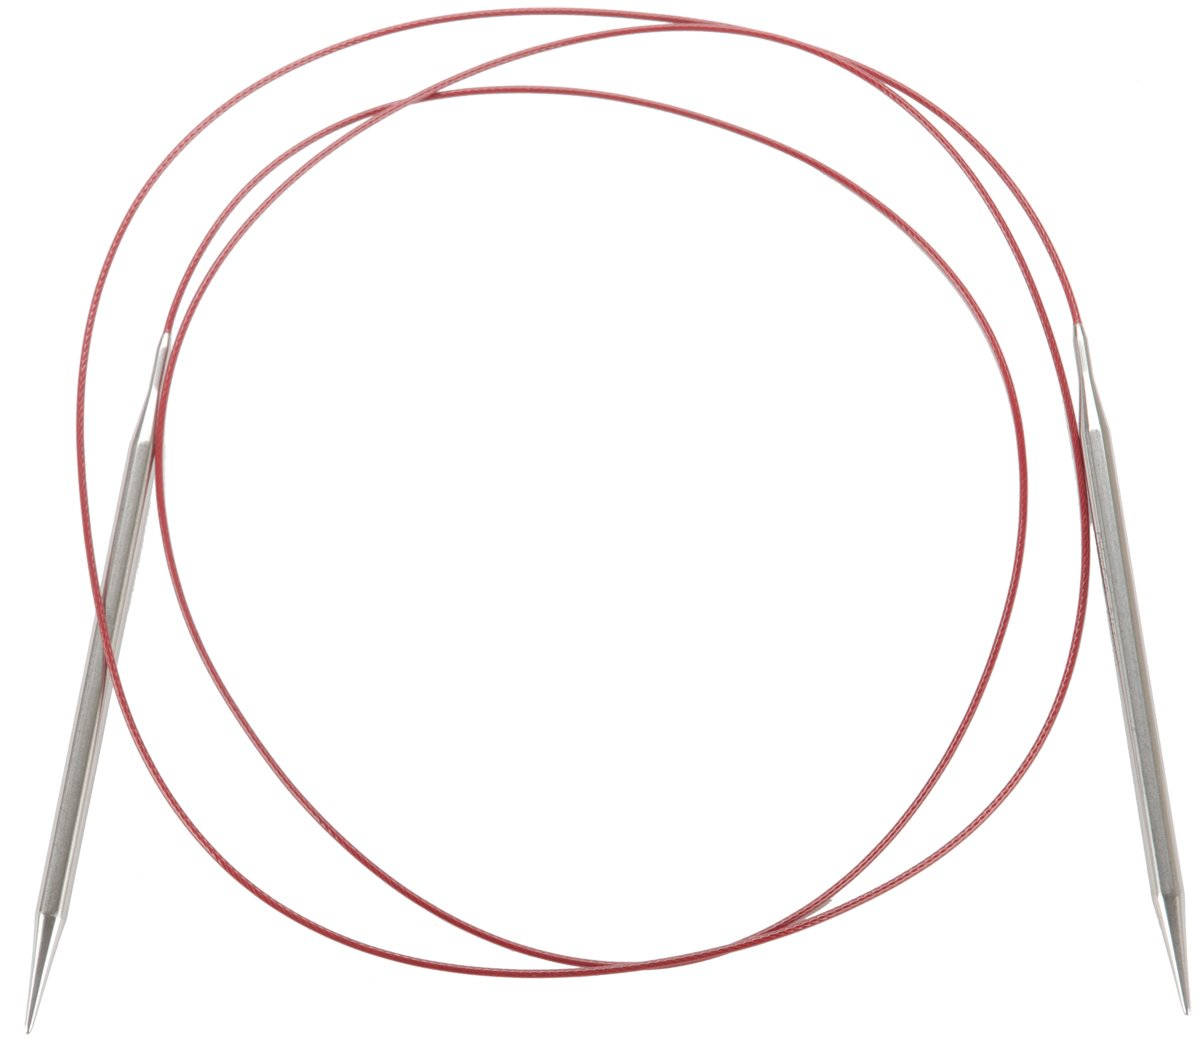 ChiaoGoo 60-Inch Red Lace Stainless Steel Circular Knitting Needles, 11/8mm 7060-11